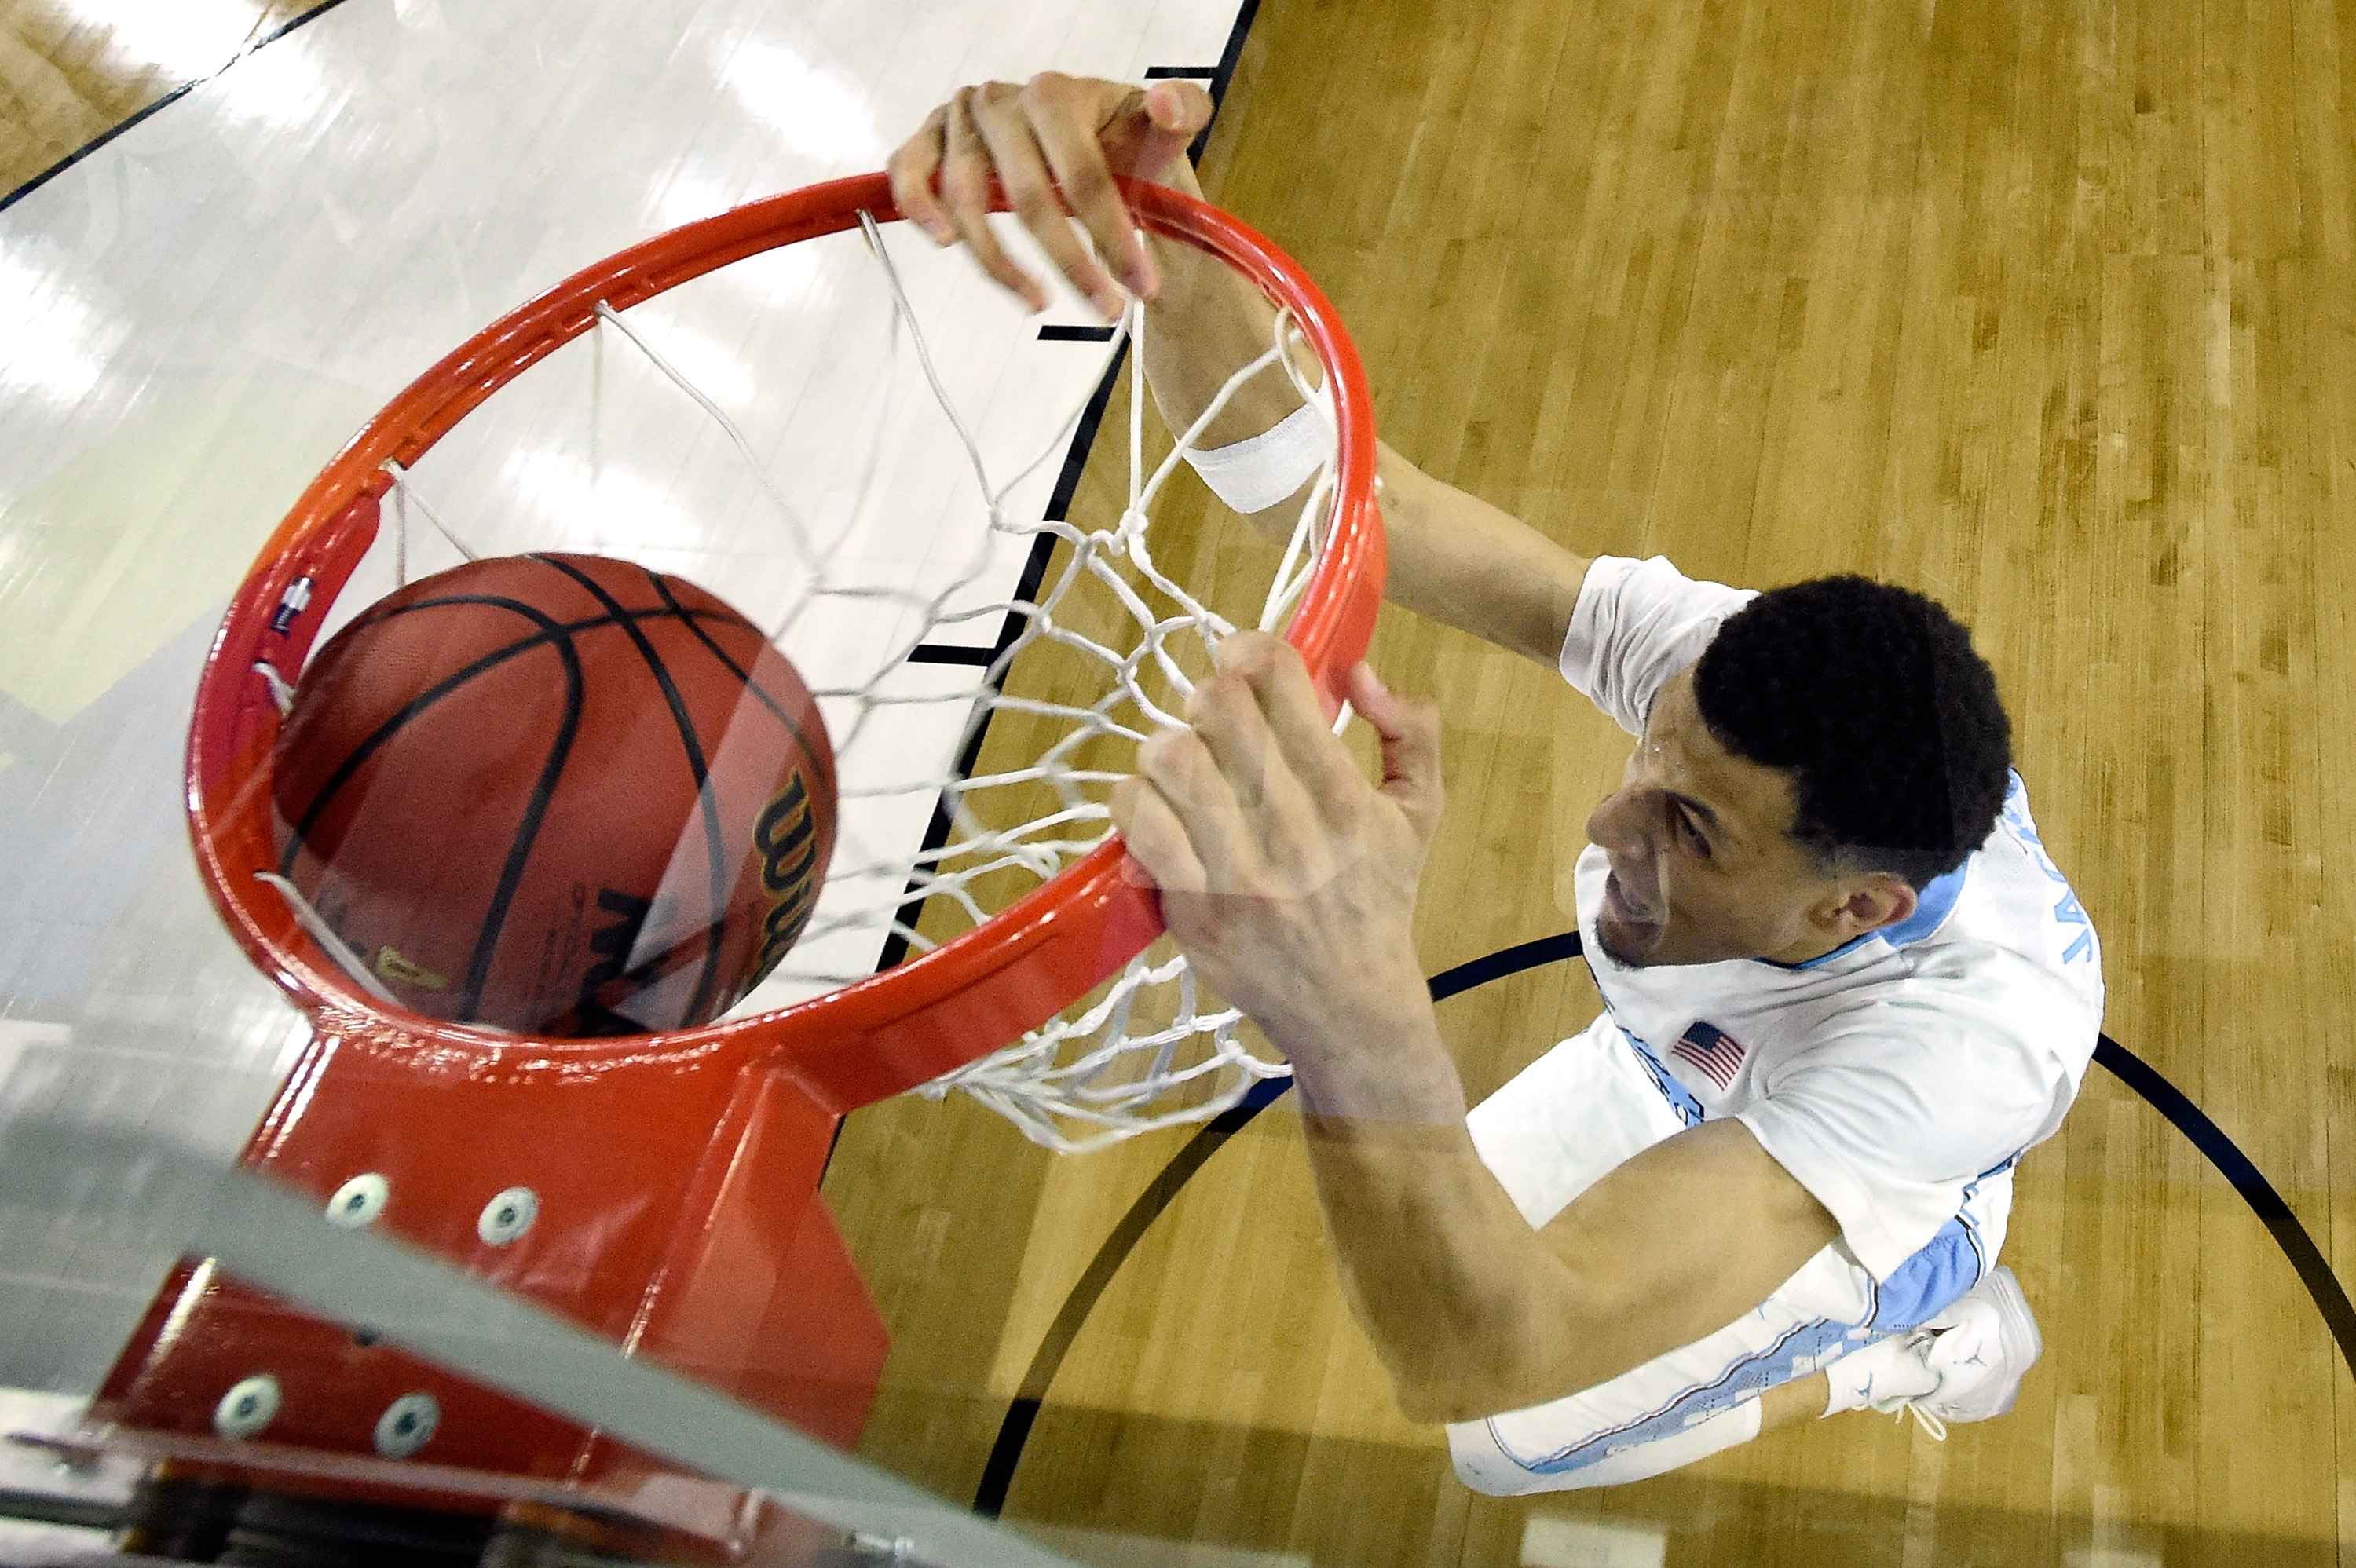 Justin Jackson of the North Carolina Tar Heels dunks the ball in the second half against the Syracuse Orange during the NCAA Men's Final Four Semifinal at NRG Stadium on April 2, 2016 in Houston, Texas.